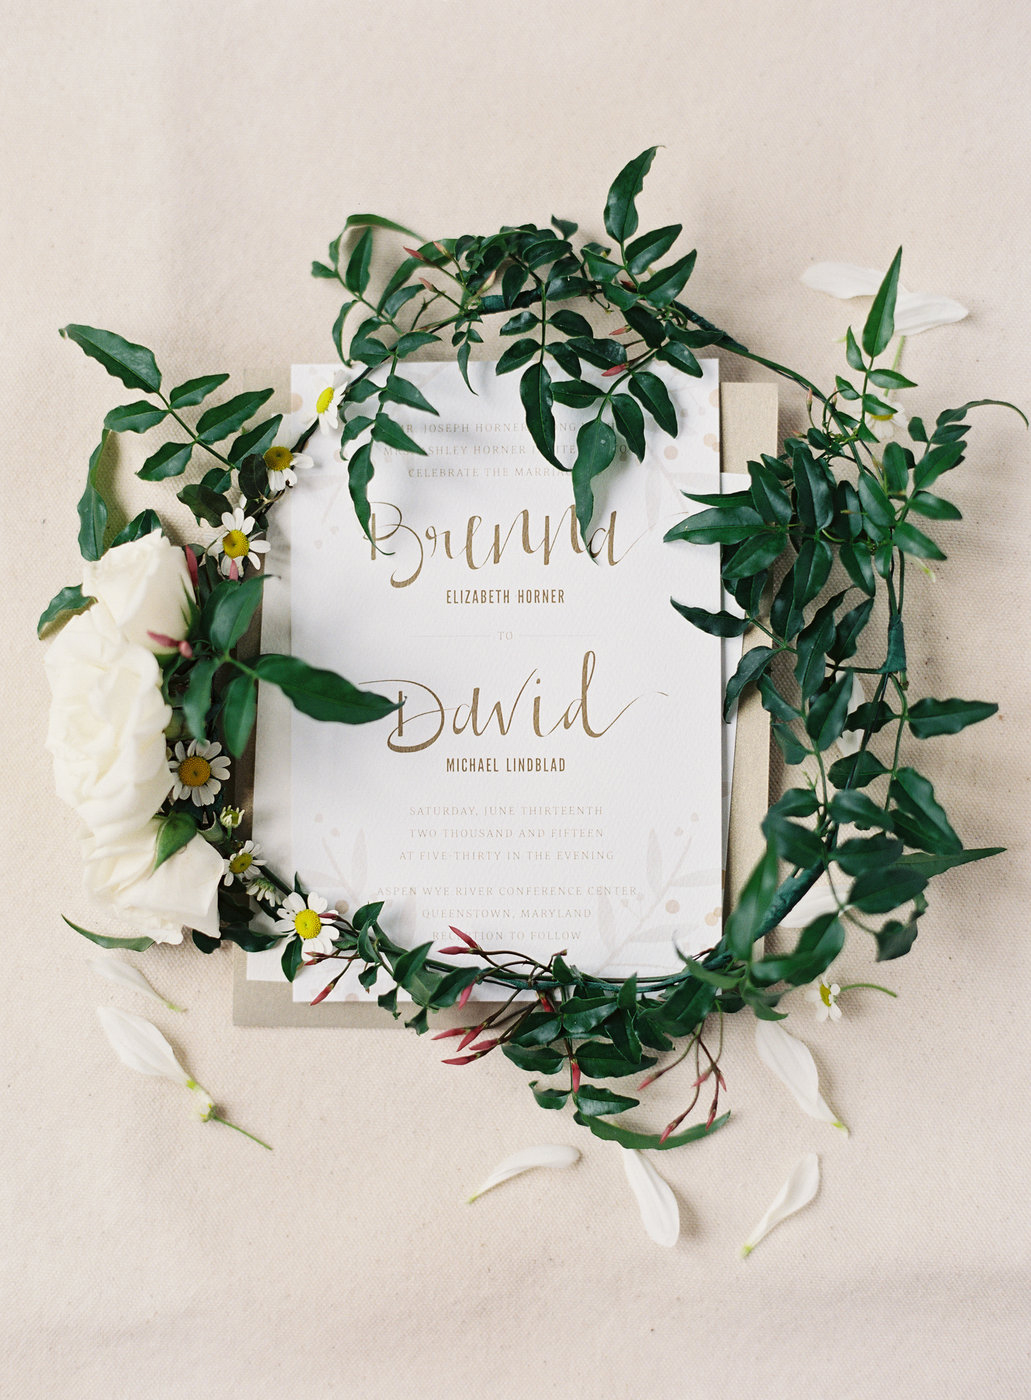 wedding wreath with daisies displayed on top of stationary suite